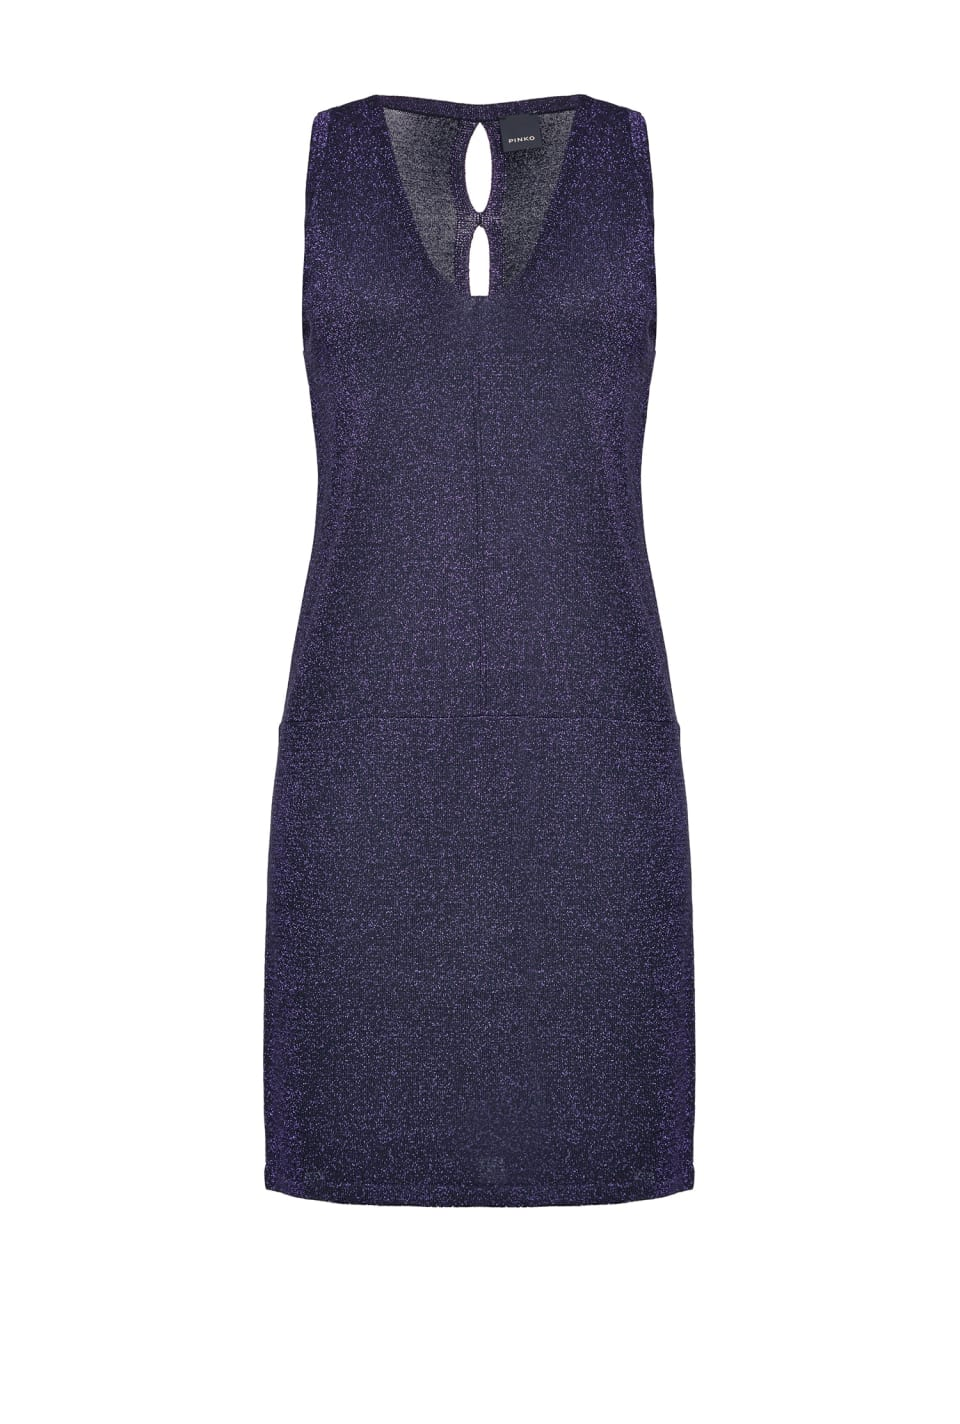 Lurex knit mini dress - Pinko